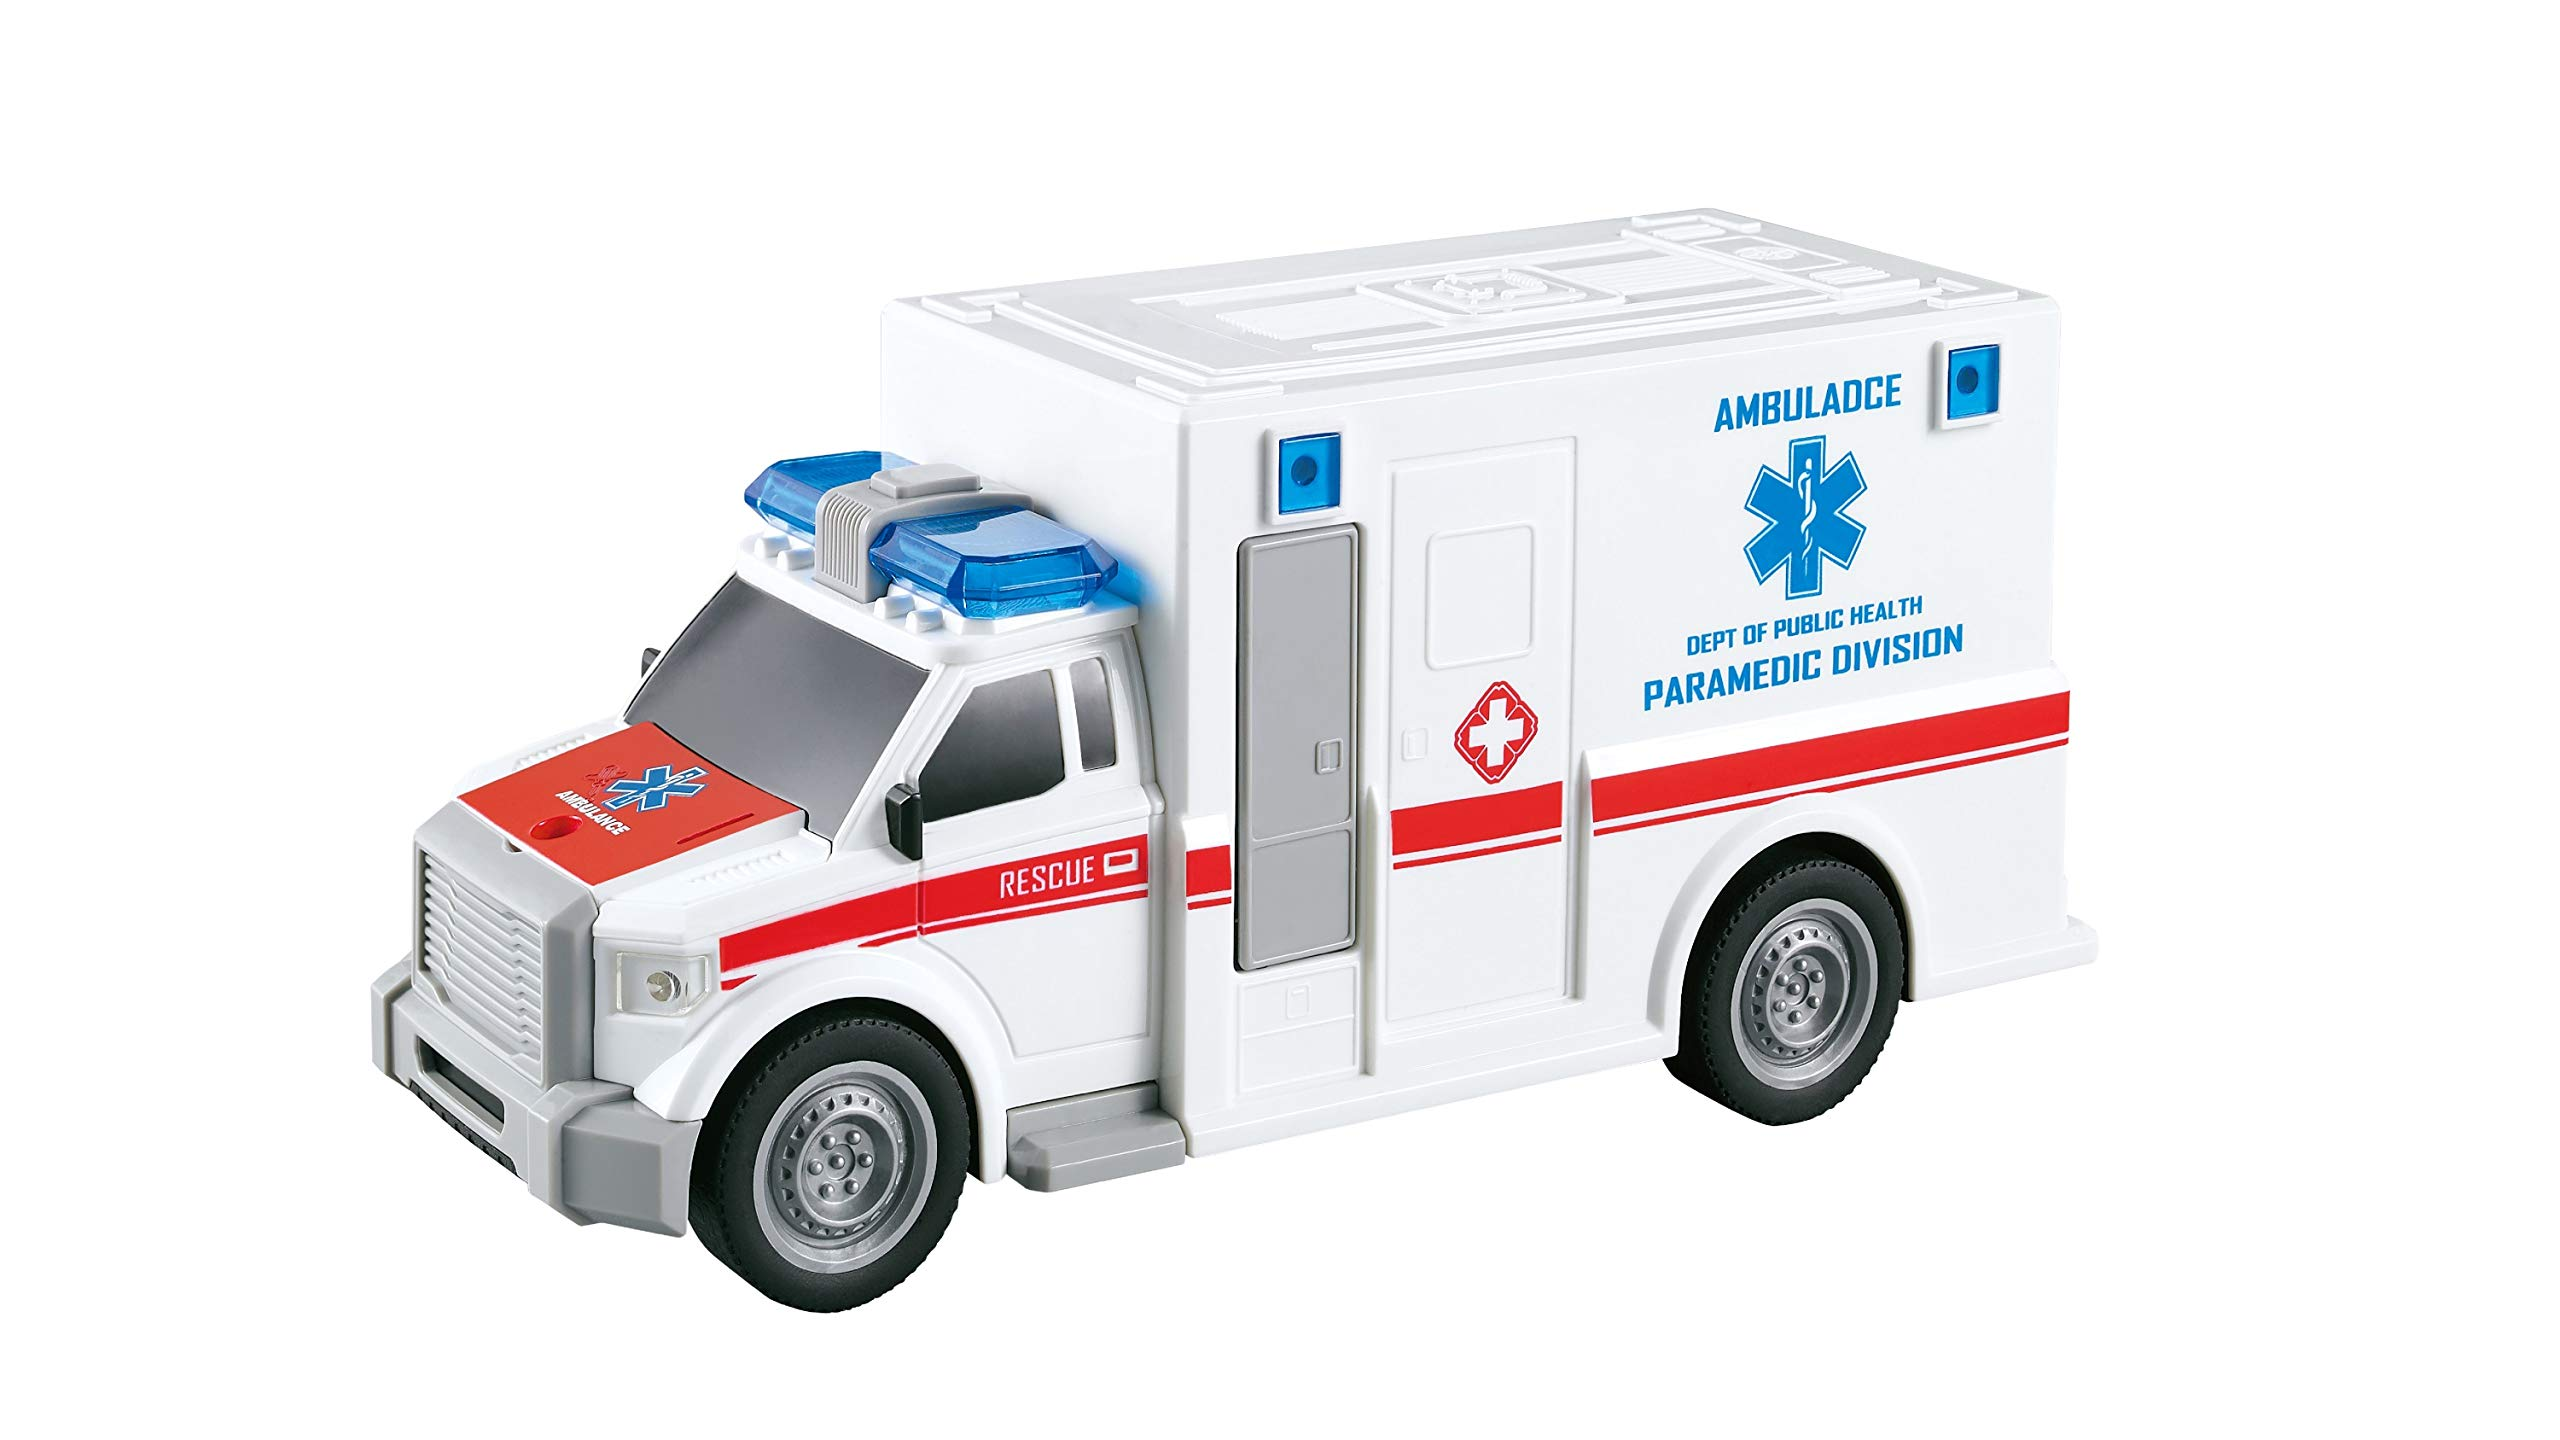 City Service Ambulance Toy Car for Kids with Lights and Siren Sounds - Friction Powered Vehicle - Emergency Medical Rescue Truck - Fun Play for Your Little Paramedic